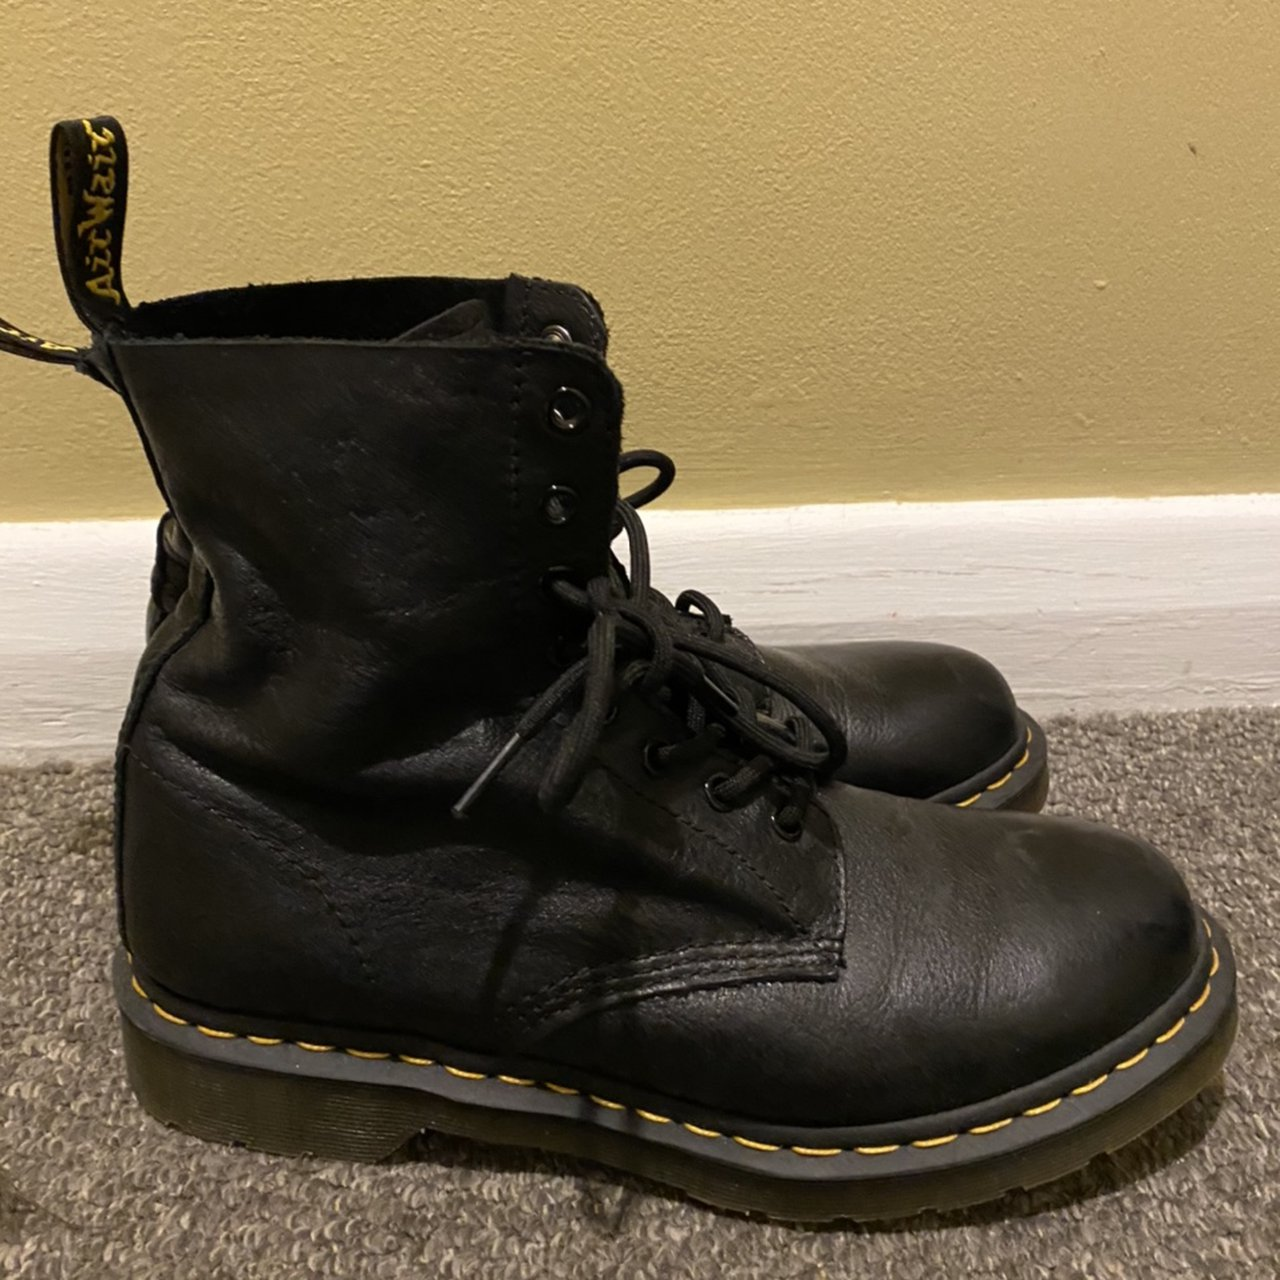 Doc Martens - Size 8.5 - Worn once